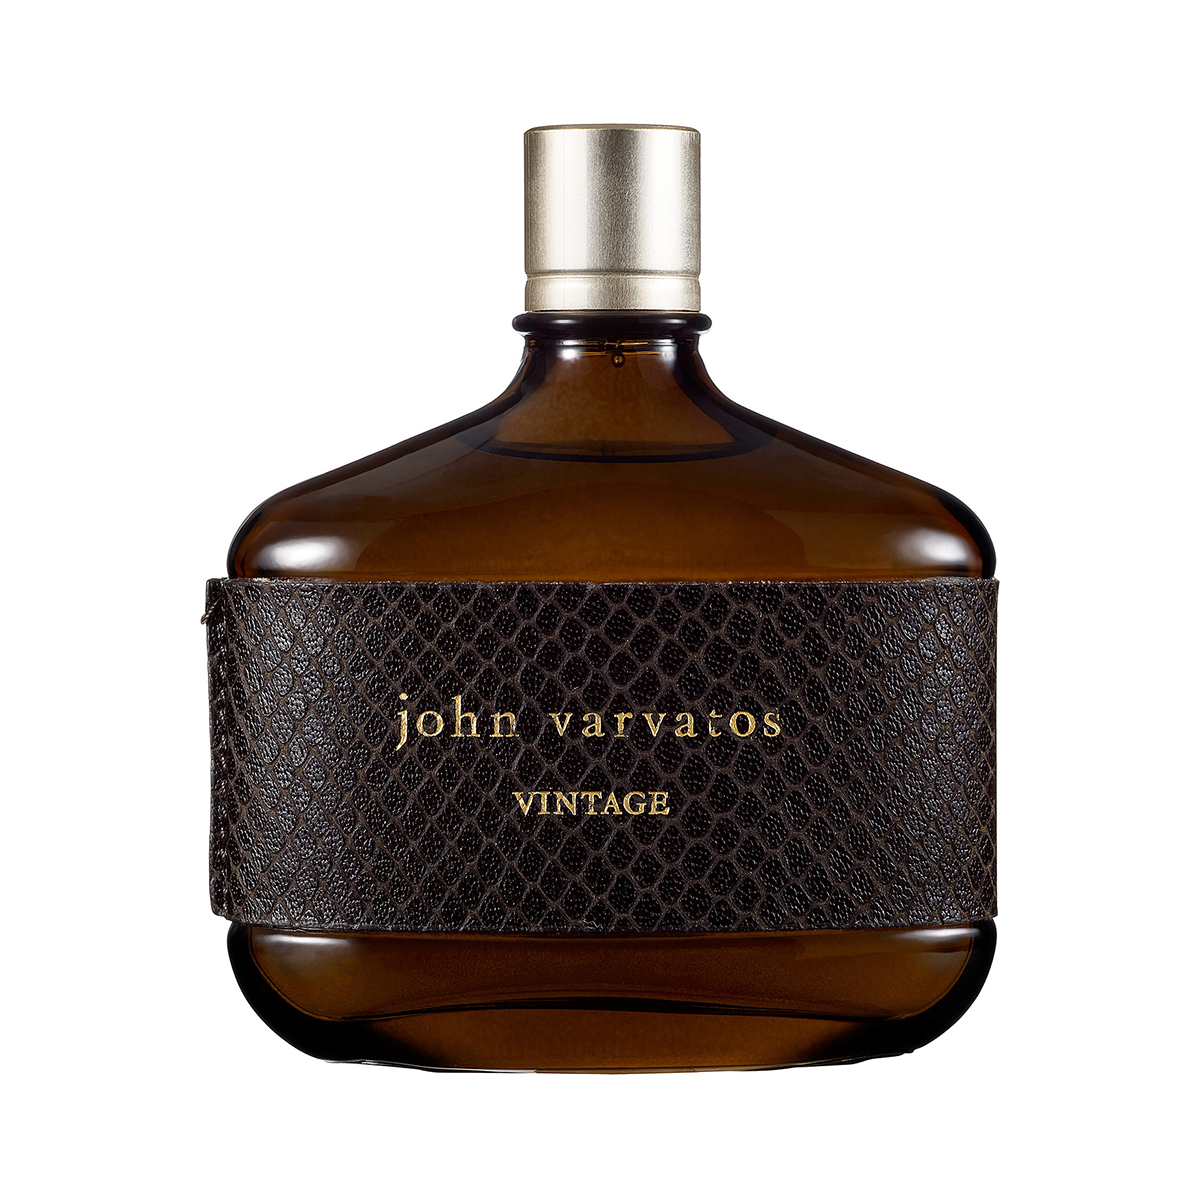 John Varvatos Vintage - Eau de Toilette For Men